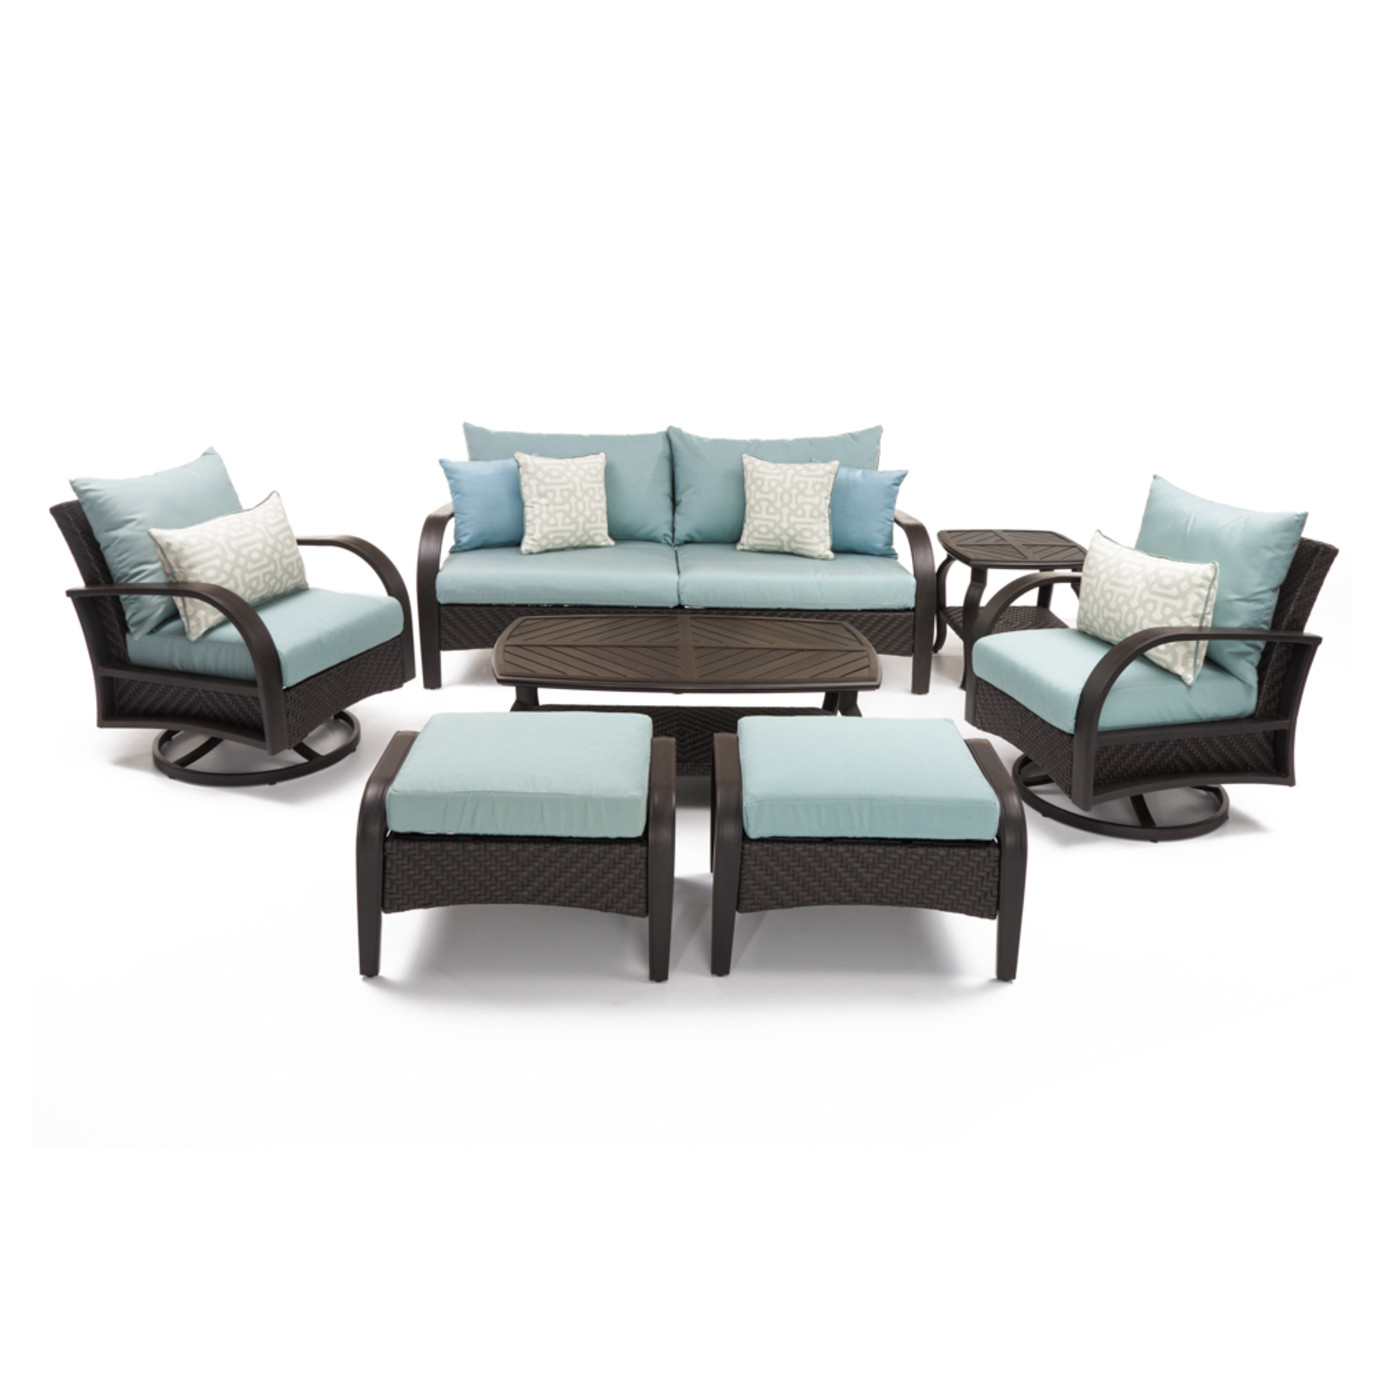 Barcelo™ 7 Piece Motion Club Deep Seating Set -Spa Blue